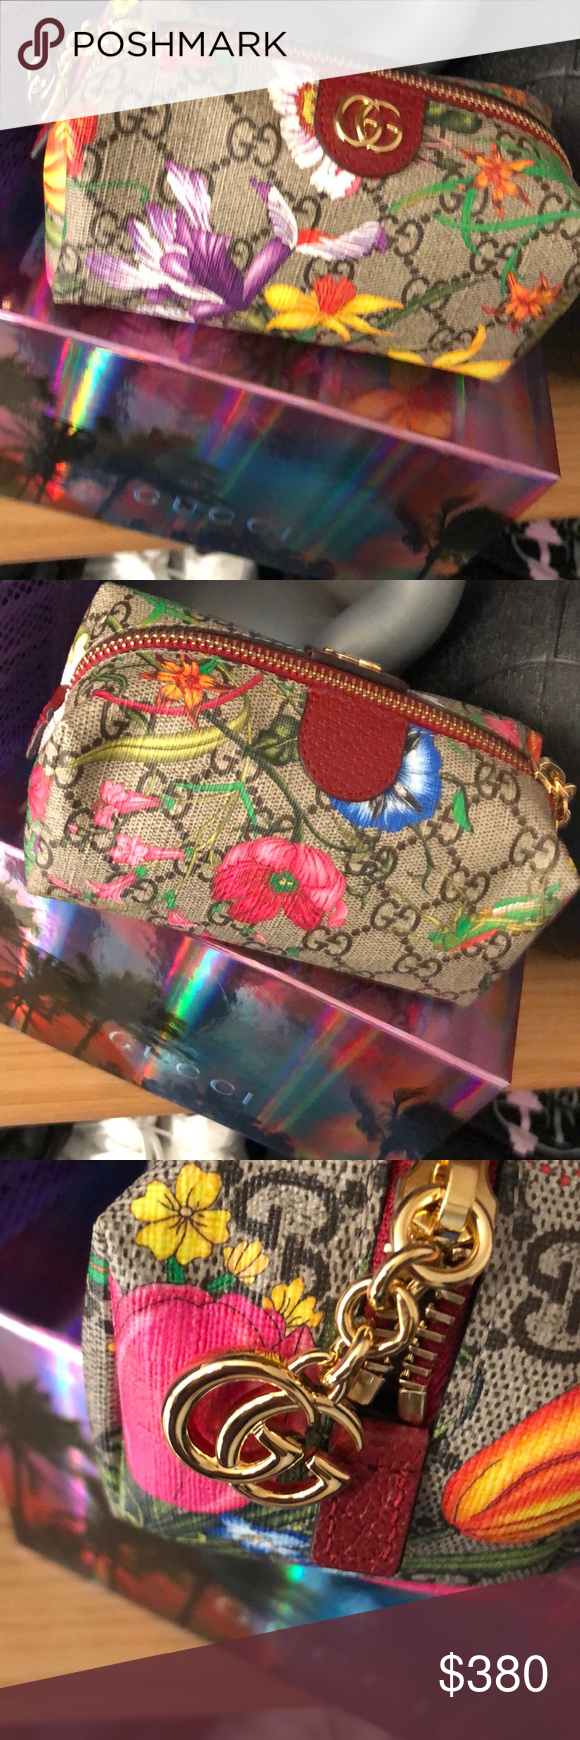 Floral Gucci pouch NWT (With images) Gucci pouch, Gucci